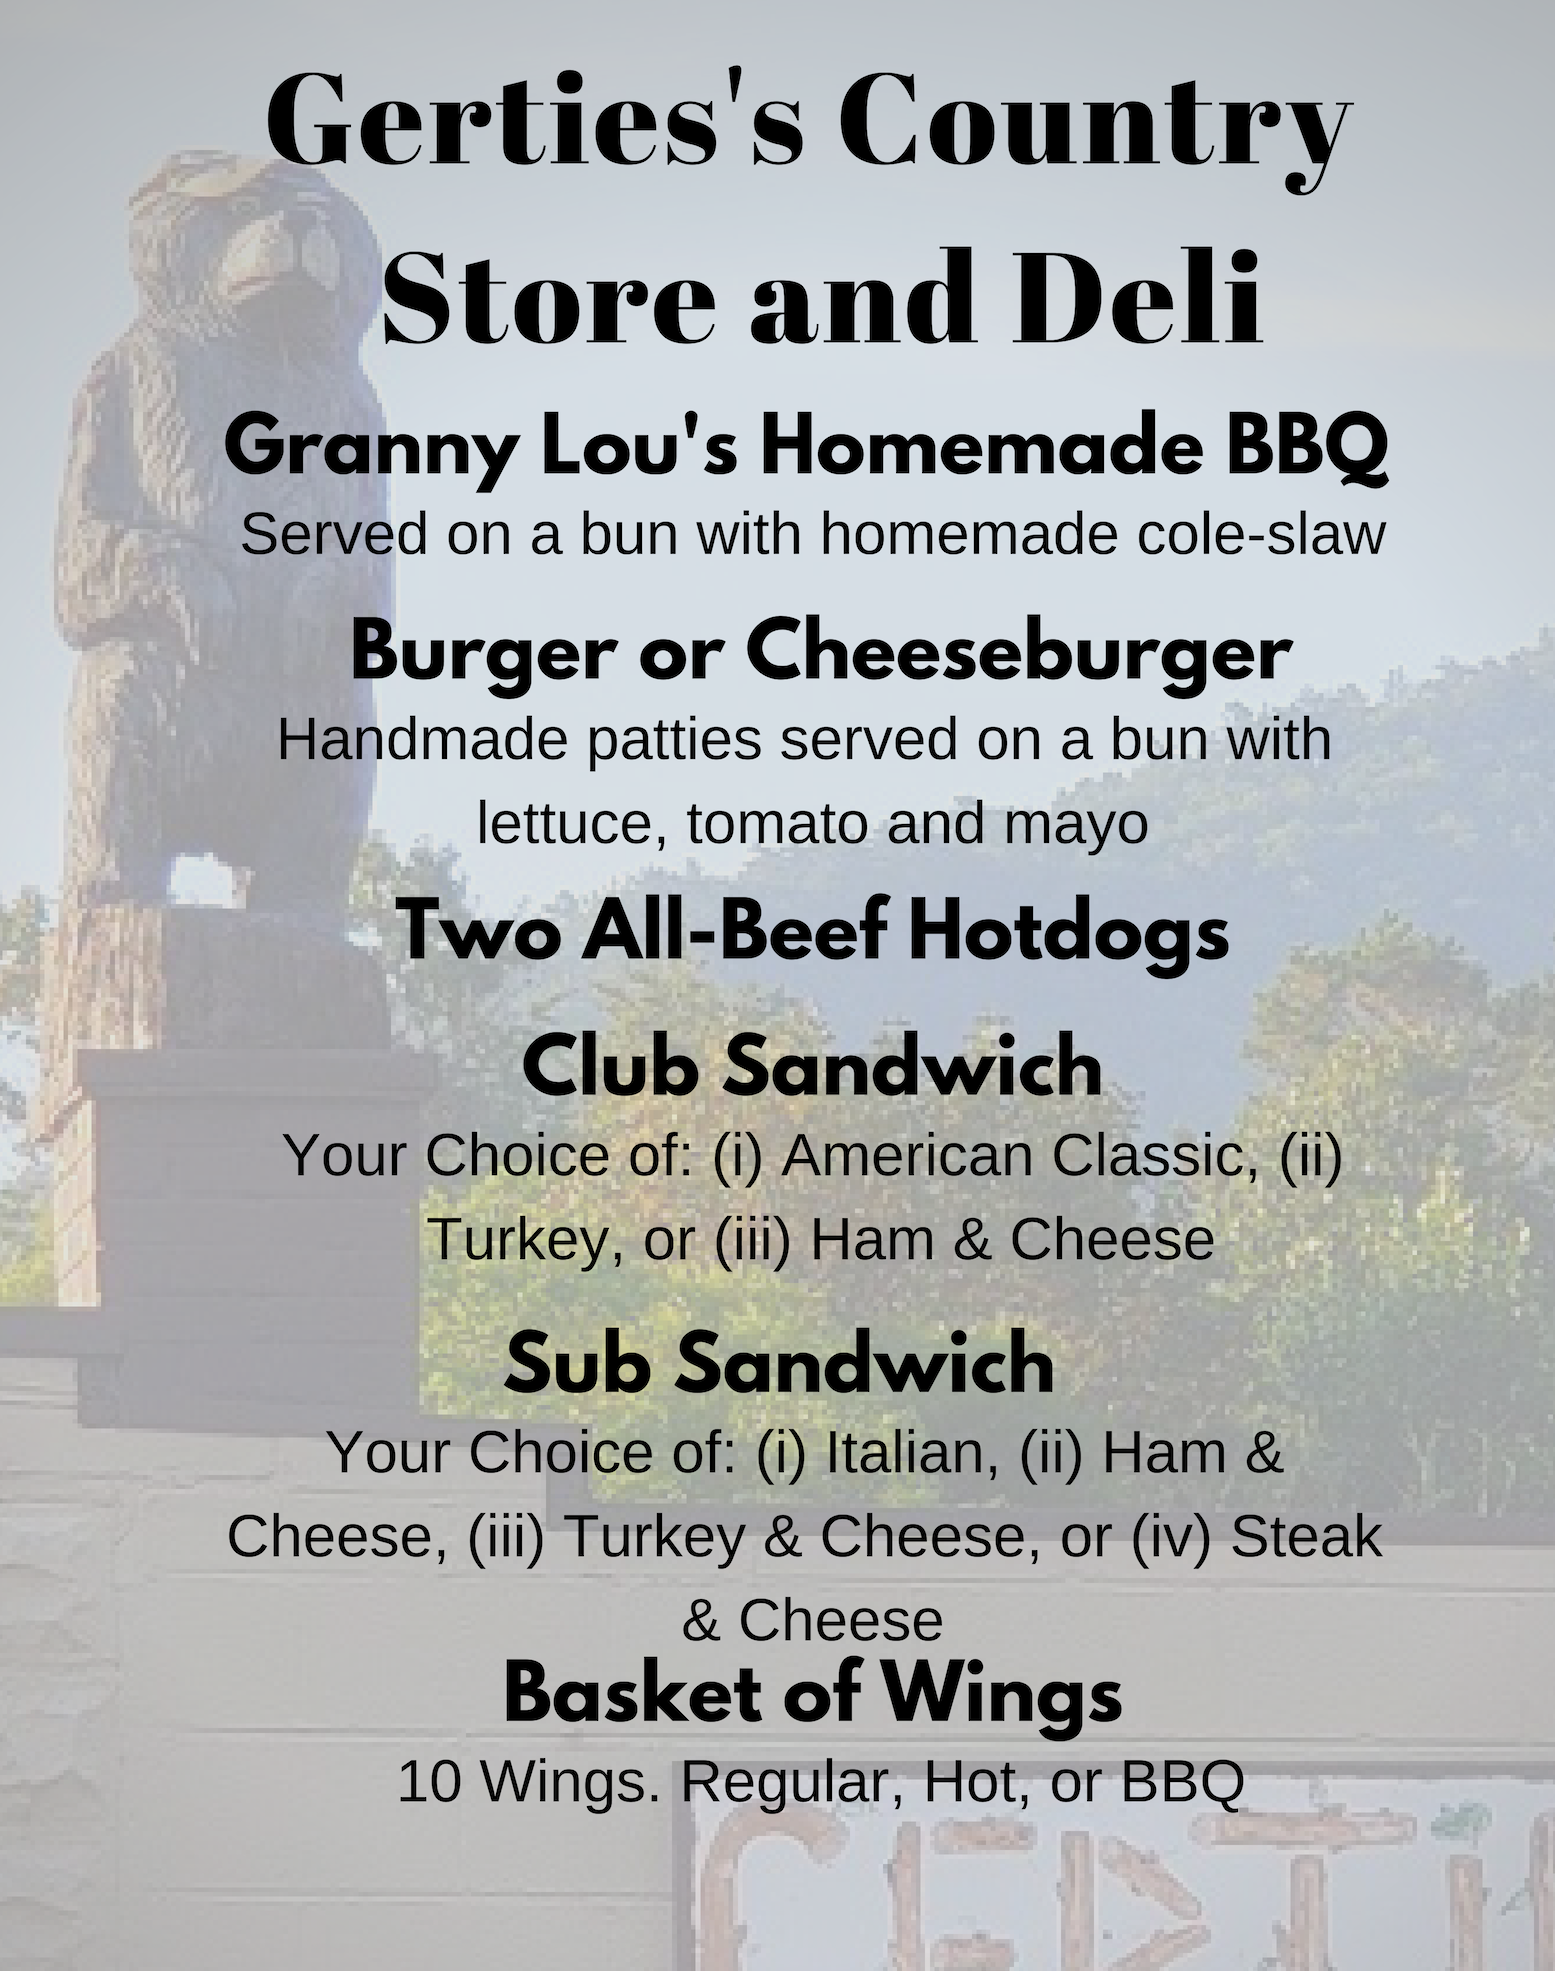 Gertie's Country Store and Deli Menu